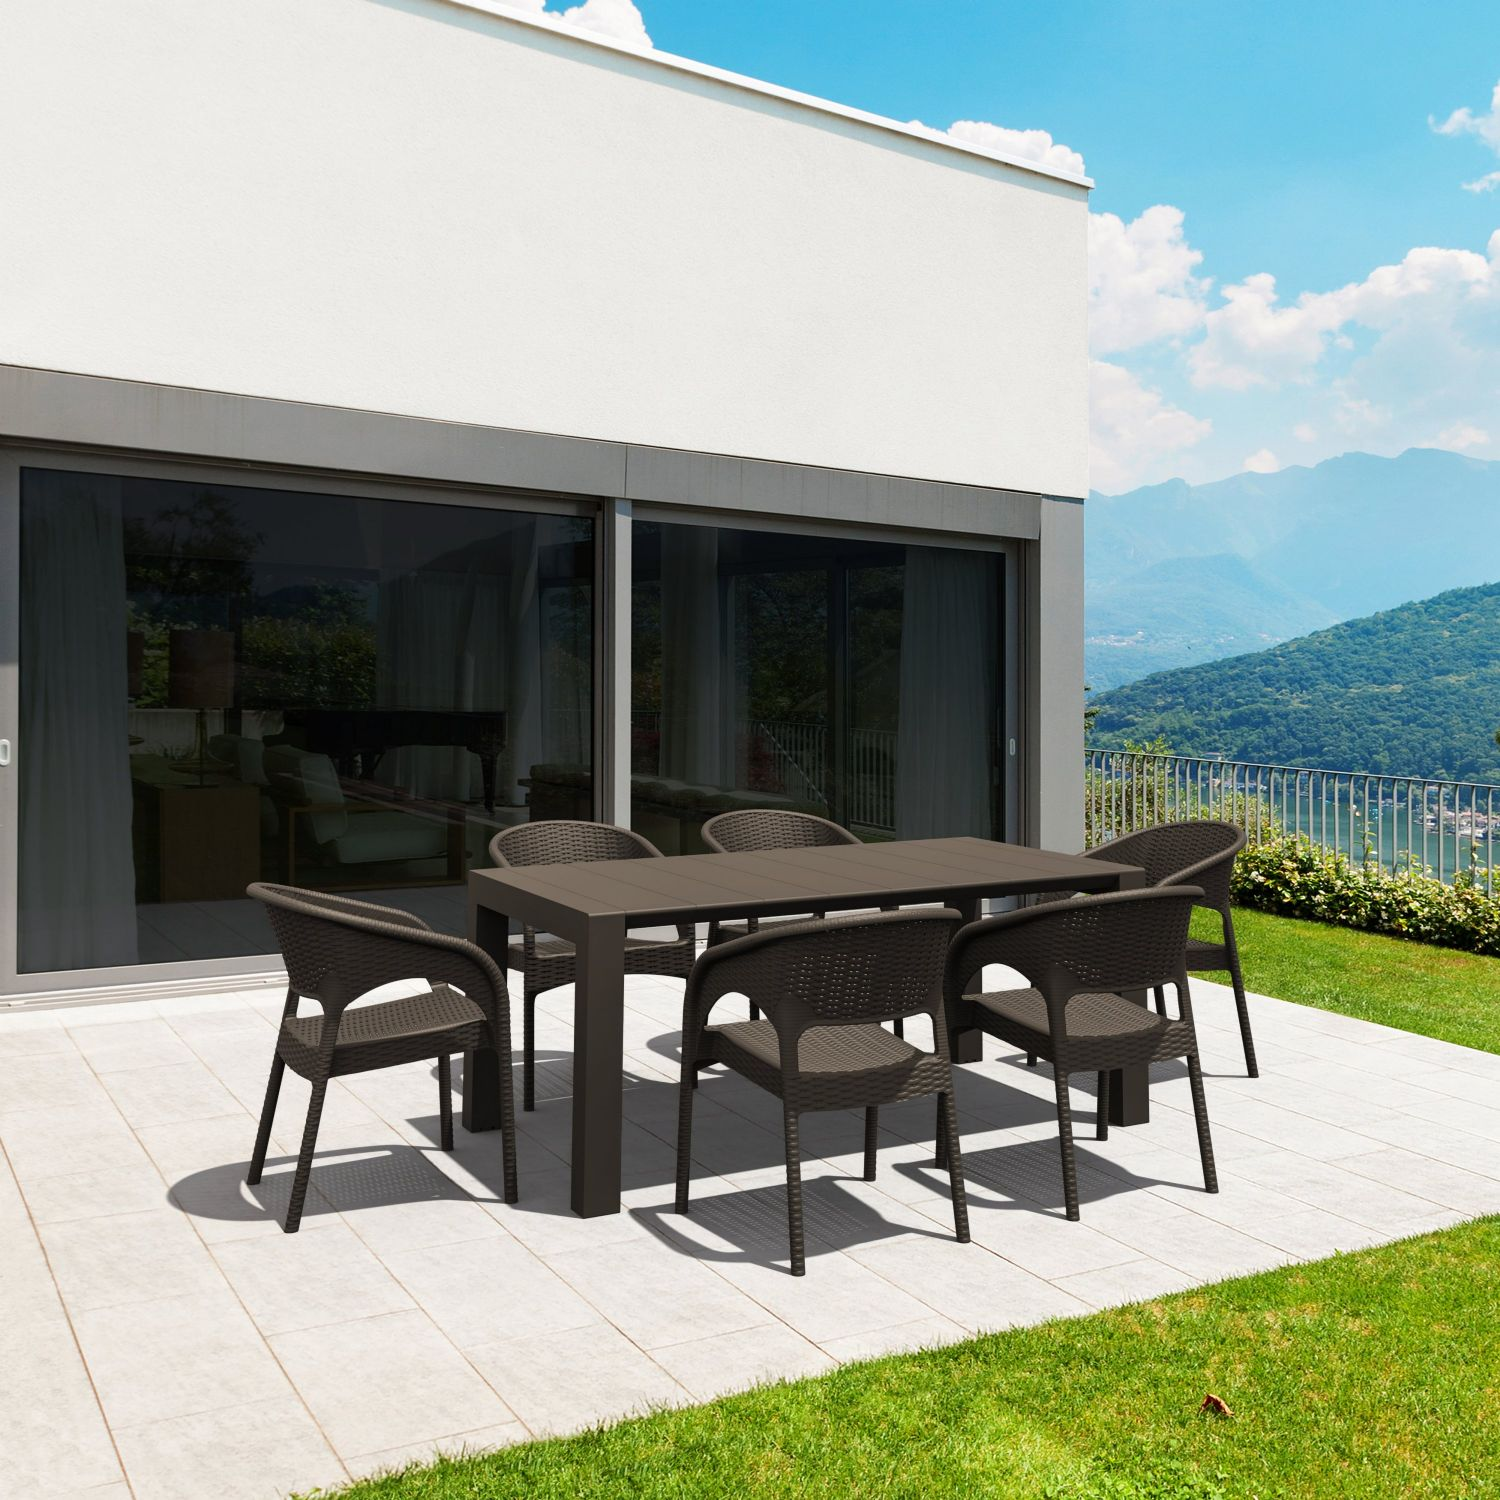 Vegas Outdoor Dining Table Extendable from 70 to 86 inch Dark Gray ISP774-DG - 5